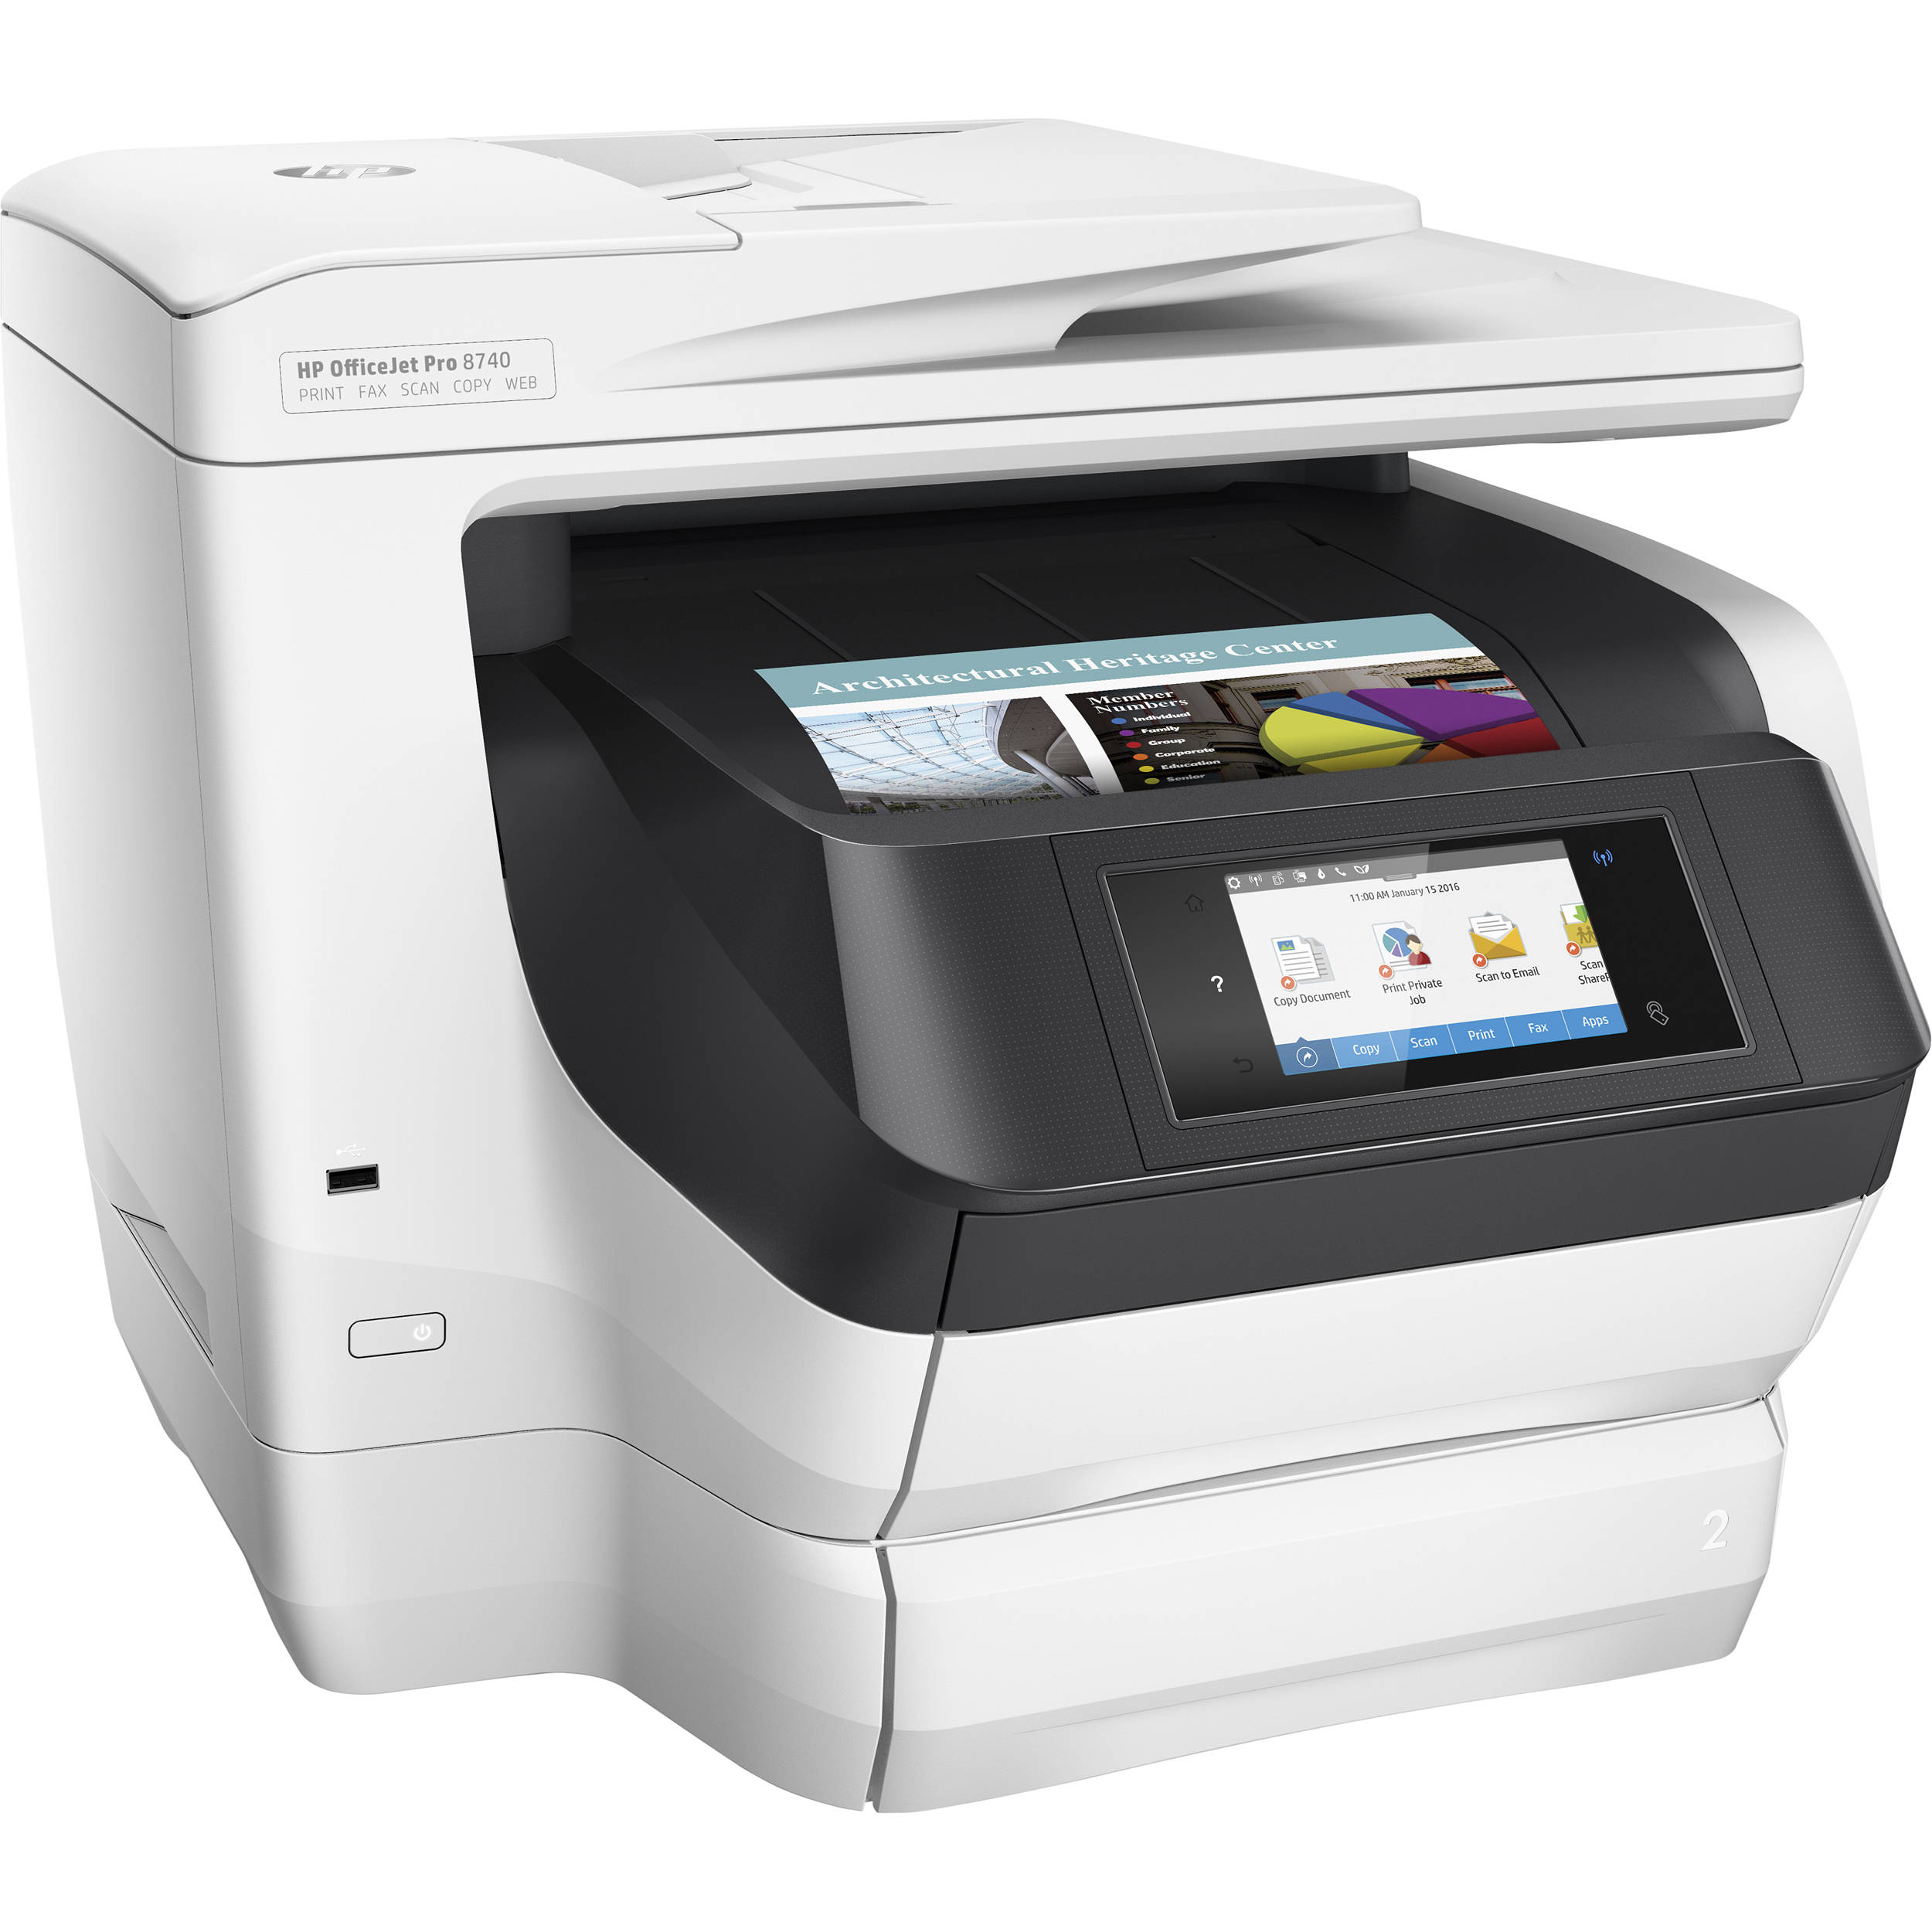 Hp Officejet Pro 8740 Allinone Inkjet Printer K7s42a#b1h B&h. Innovate Signs Of Stroke. Built Up Signs Of Stroke. Cancer Cells Signs. Virgo Love Life Signs. Pulmonary Hypertension Signs. Bottle Water Signs Of Stroke. Cross Street Signs Of Stroke. Awareness Week Signs